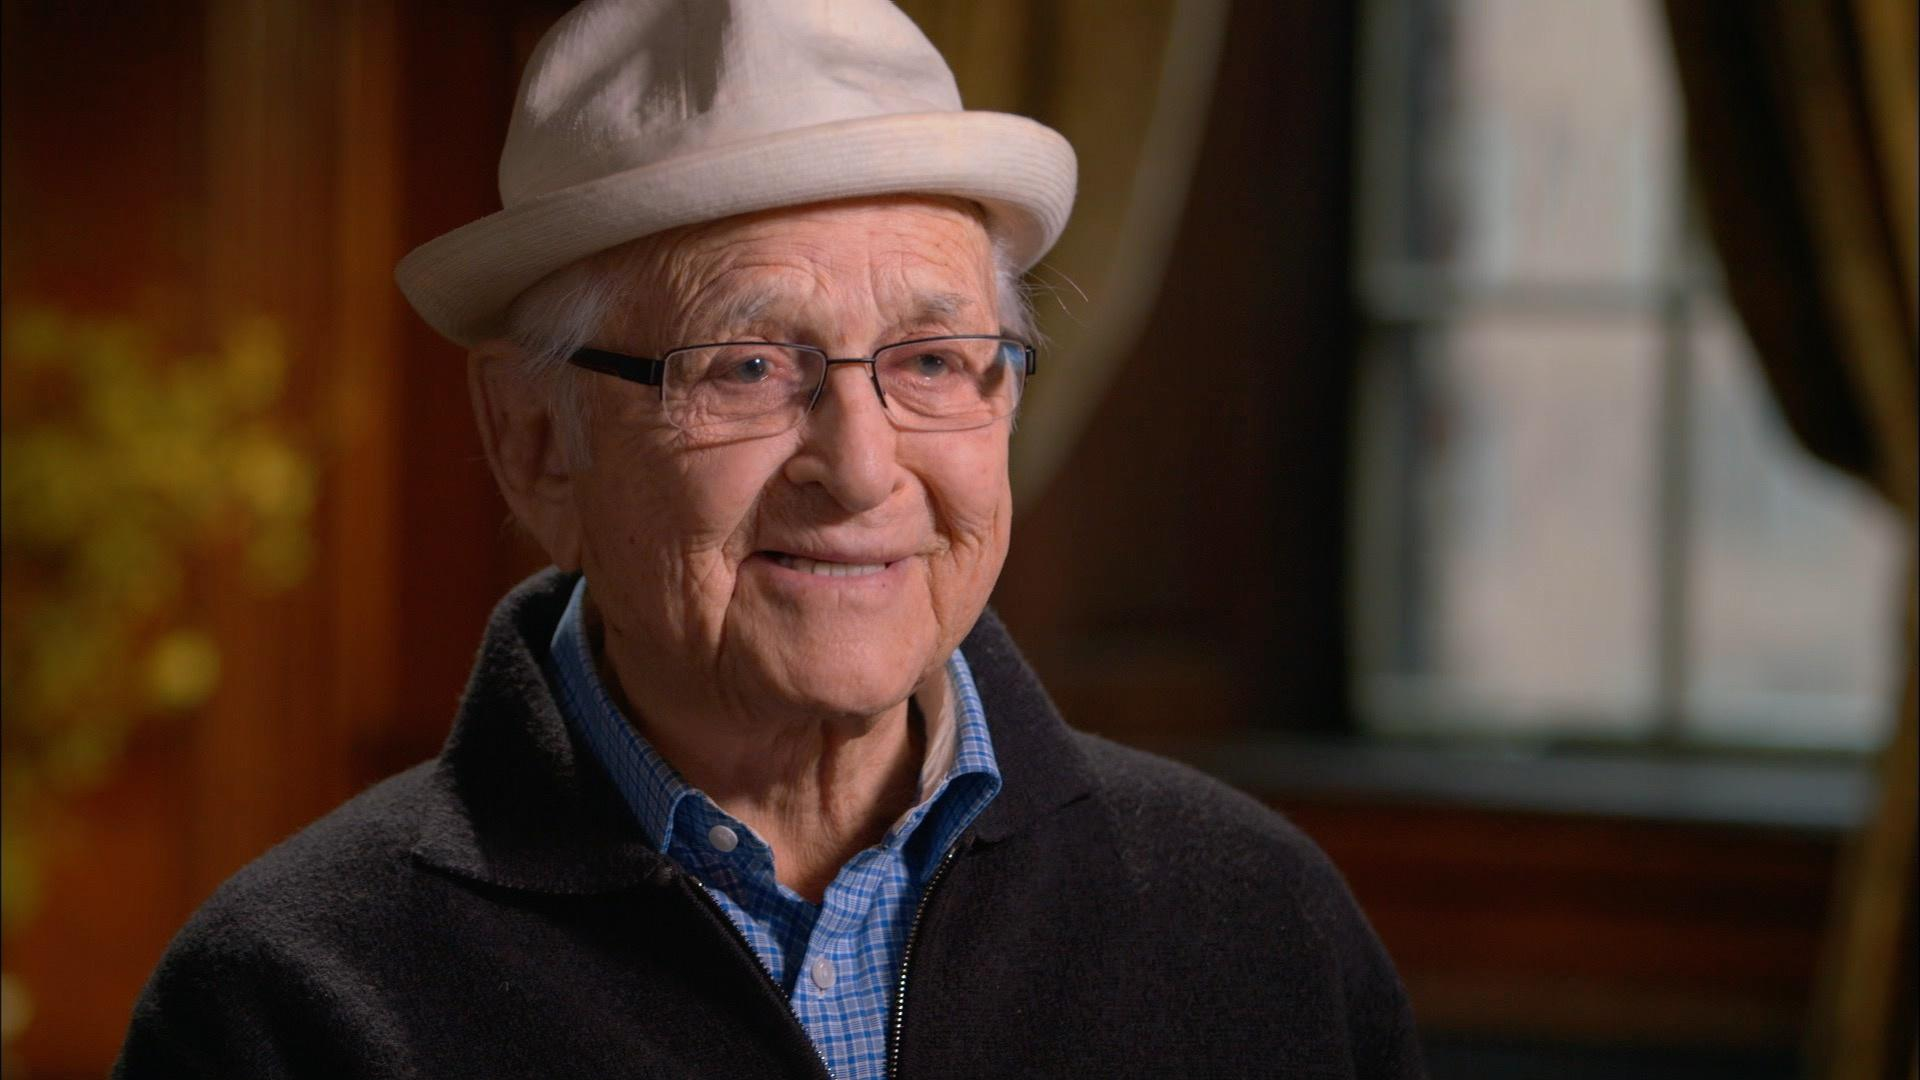 lear and comedy Norman lear remembers crying because he thought jerry lewis messed up one of his sketches even this i get to experience author and tv producer norman lear recalls his struggle to succeed in comedy before all in the family, the jeffersons and maude.